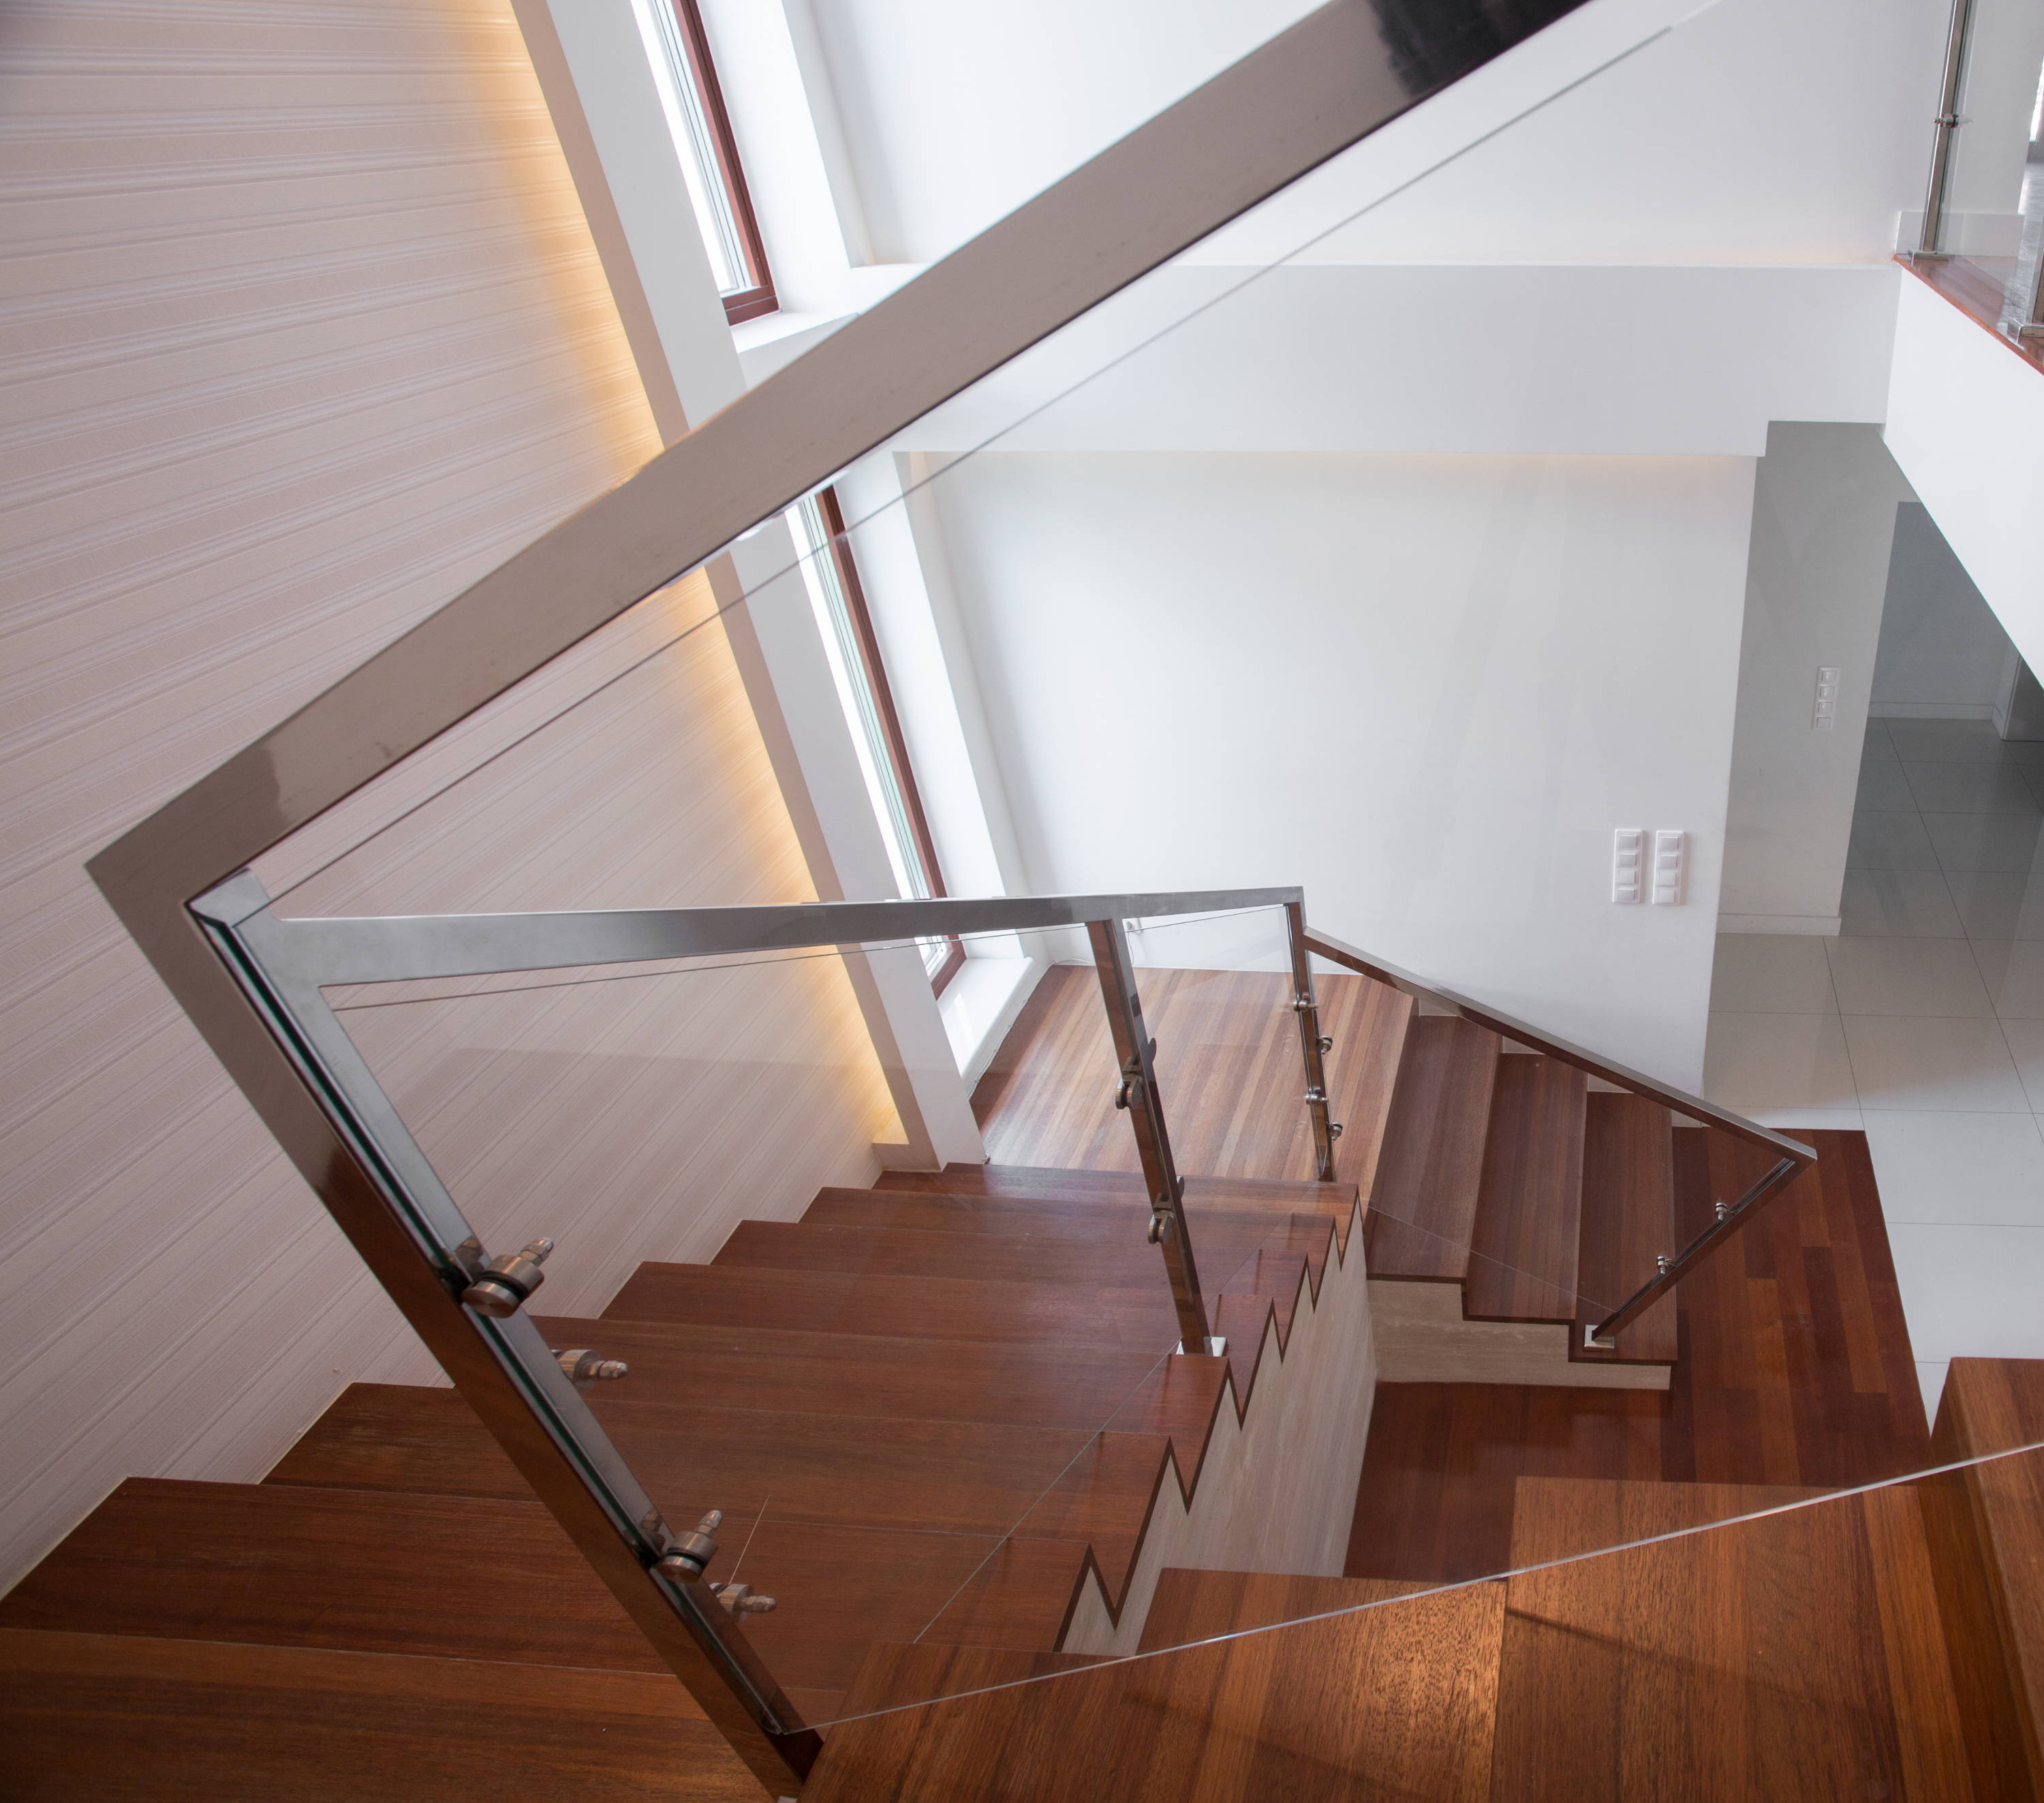 Glass railing with chrome handrails